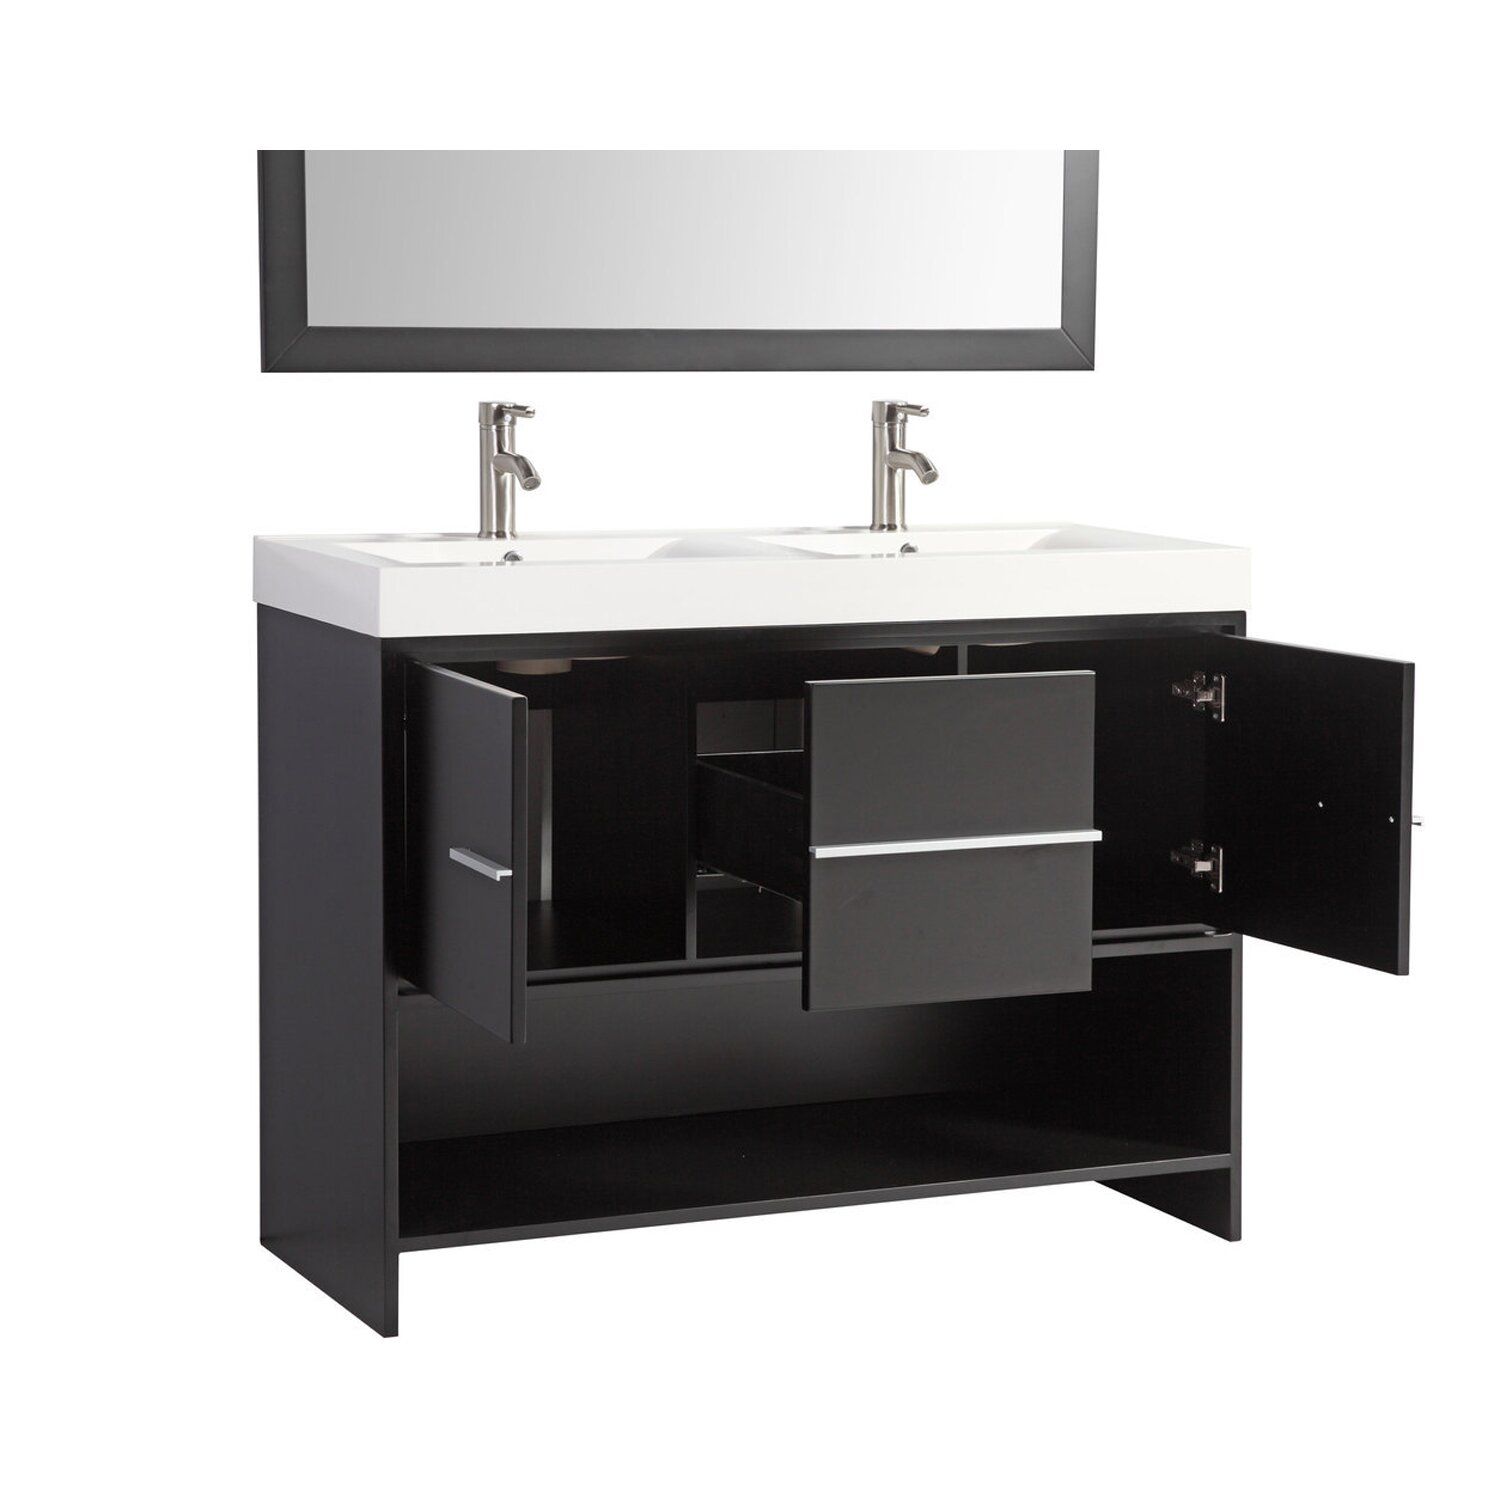 Mtdvanities belarus 48 double sink bathroom vanity set with mirror reviews wayfair Bathroom sink and vanity sets